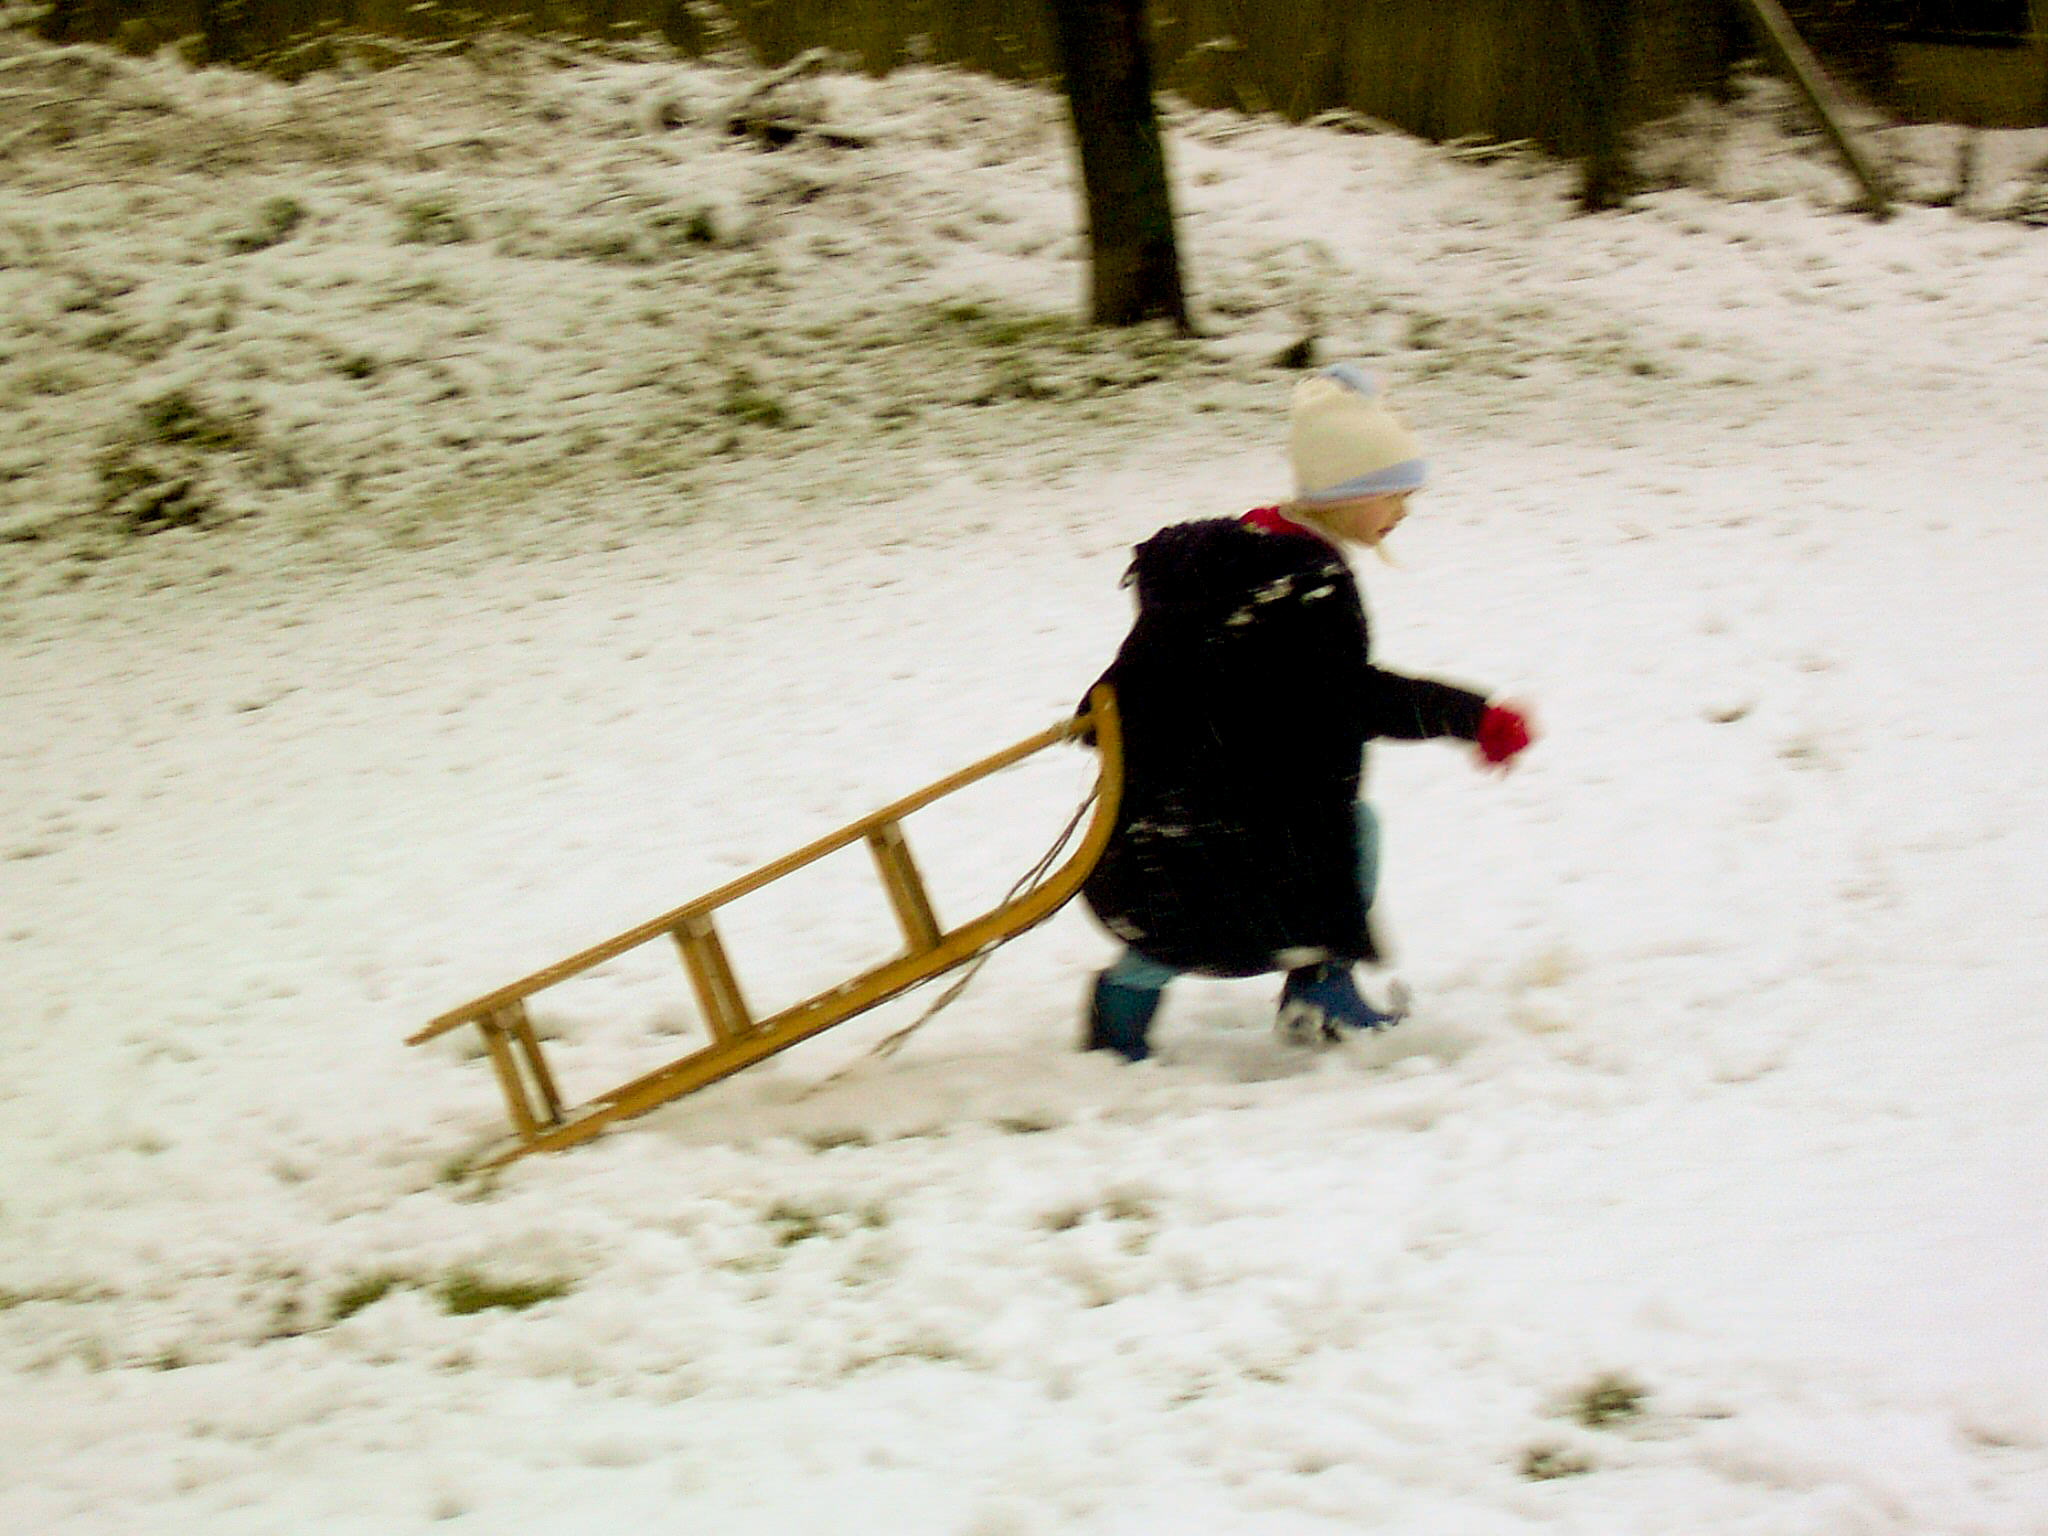 dragging the sledge back up the dip